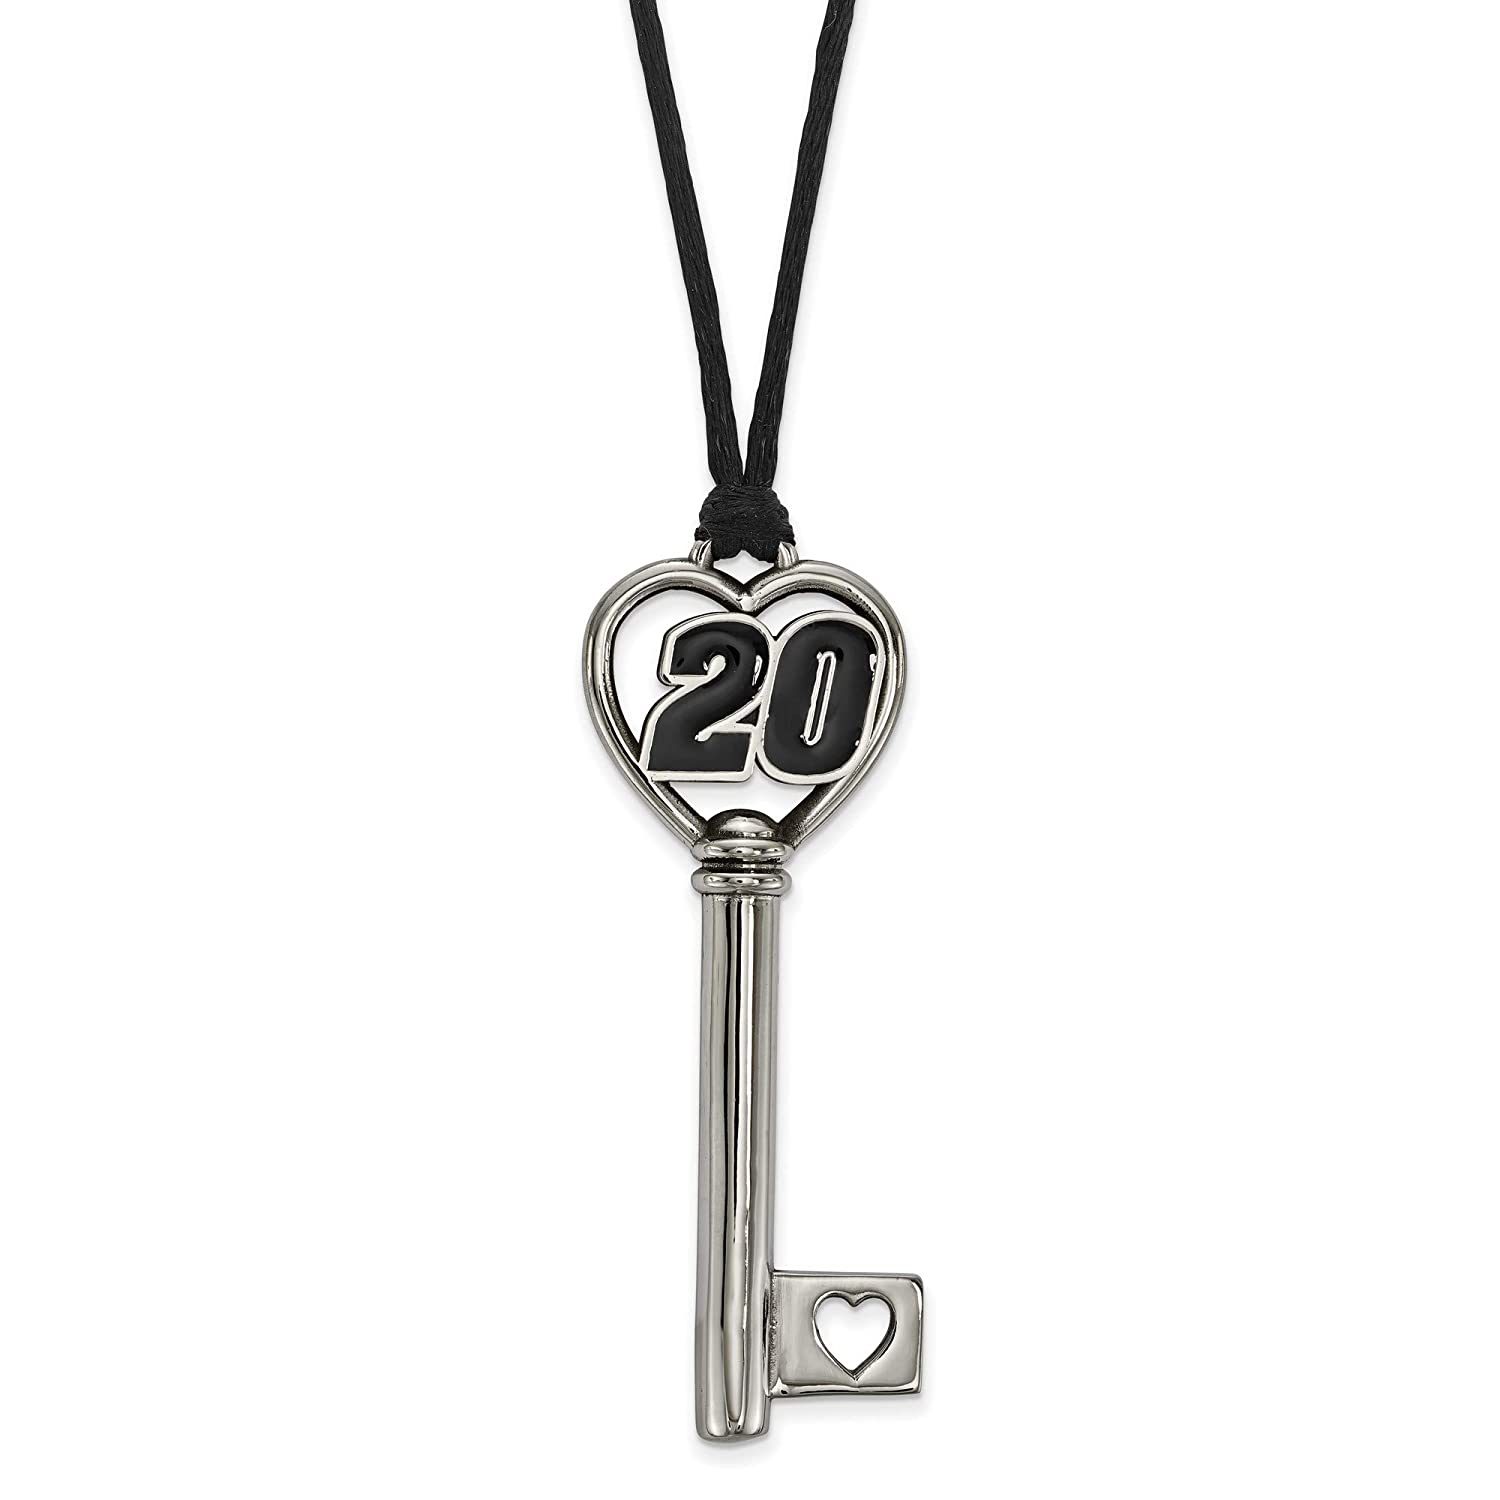 Kira Riley Stainless 20 Heart 2 Key Pendant ON Rope Chain Necklace